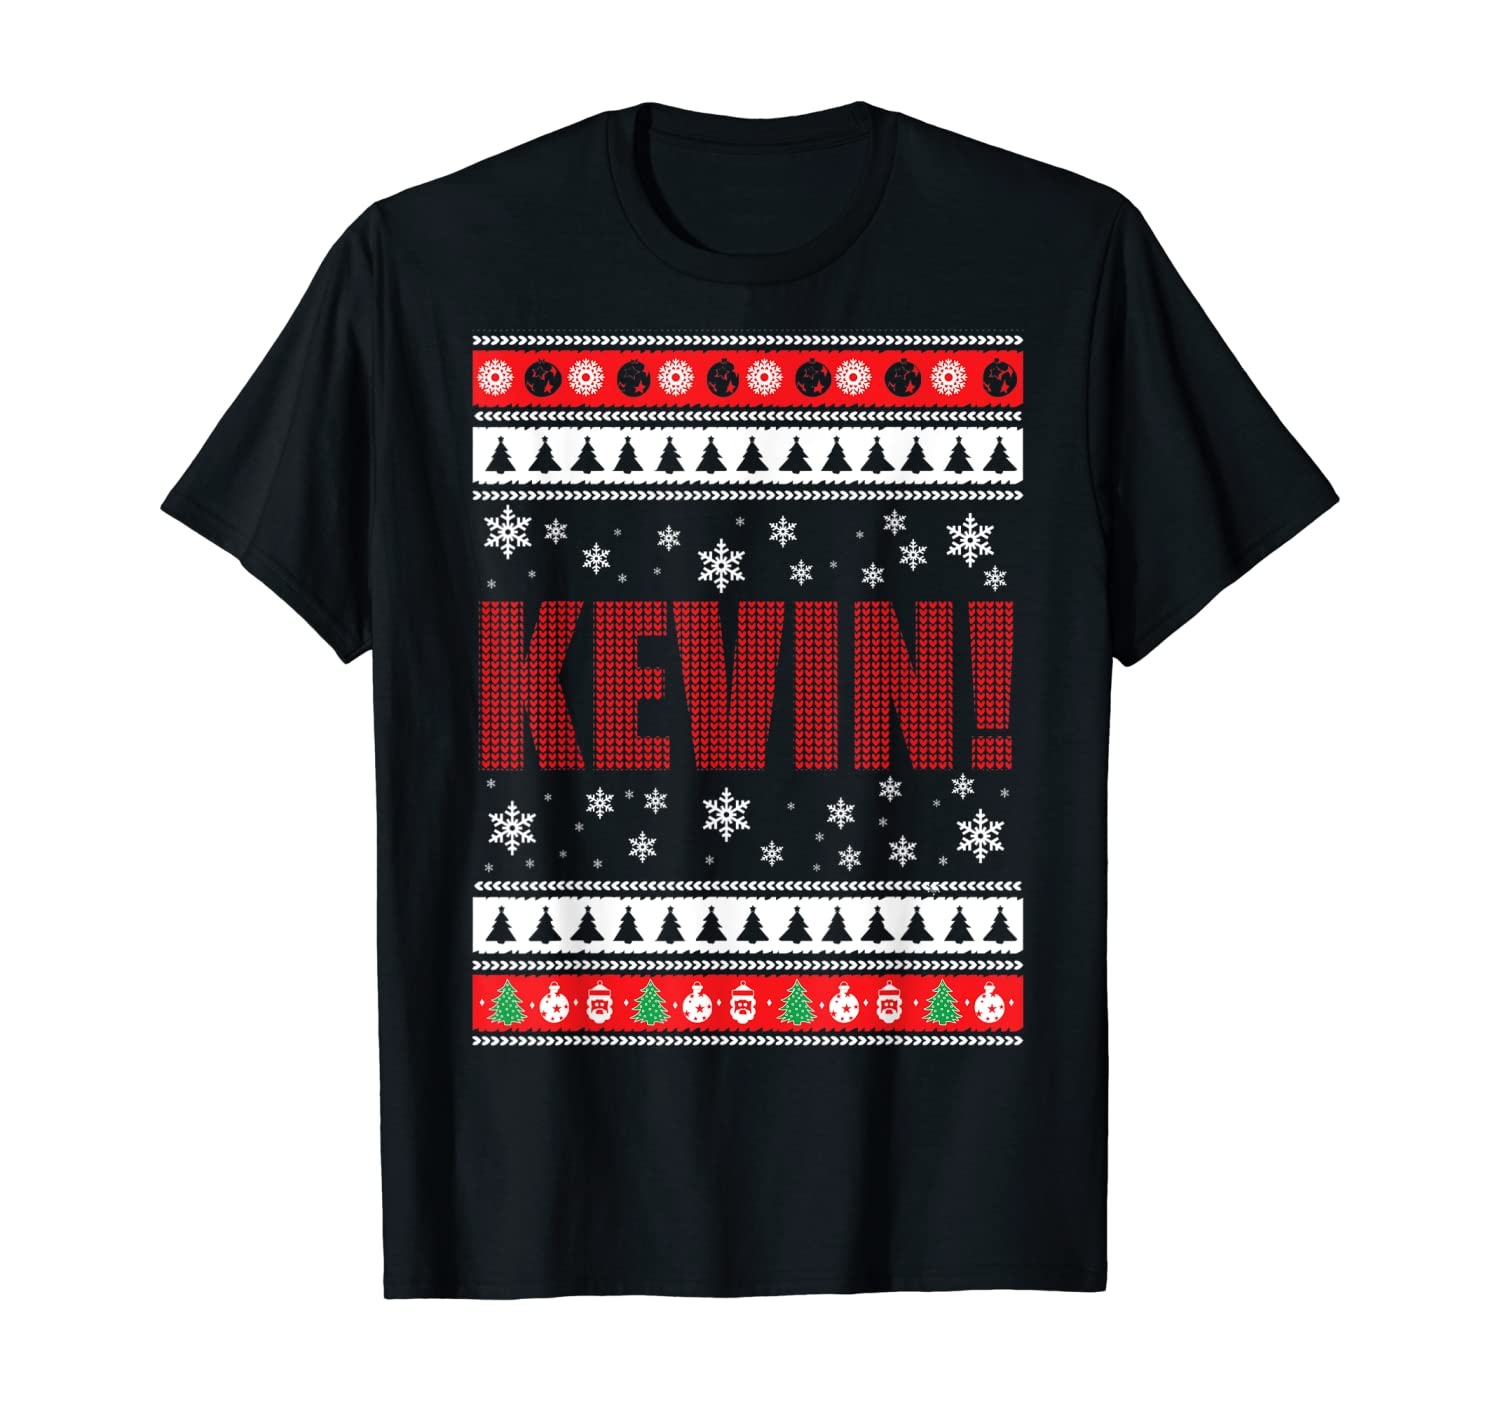 KEVIN Fun X-Mas Holiday Gift T-Shirt for Movie lovers